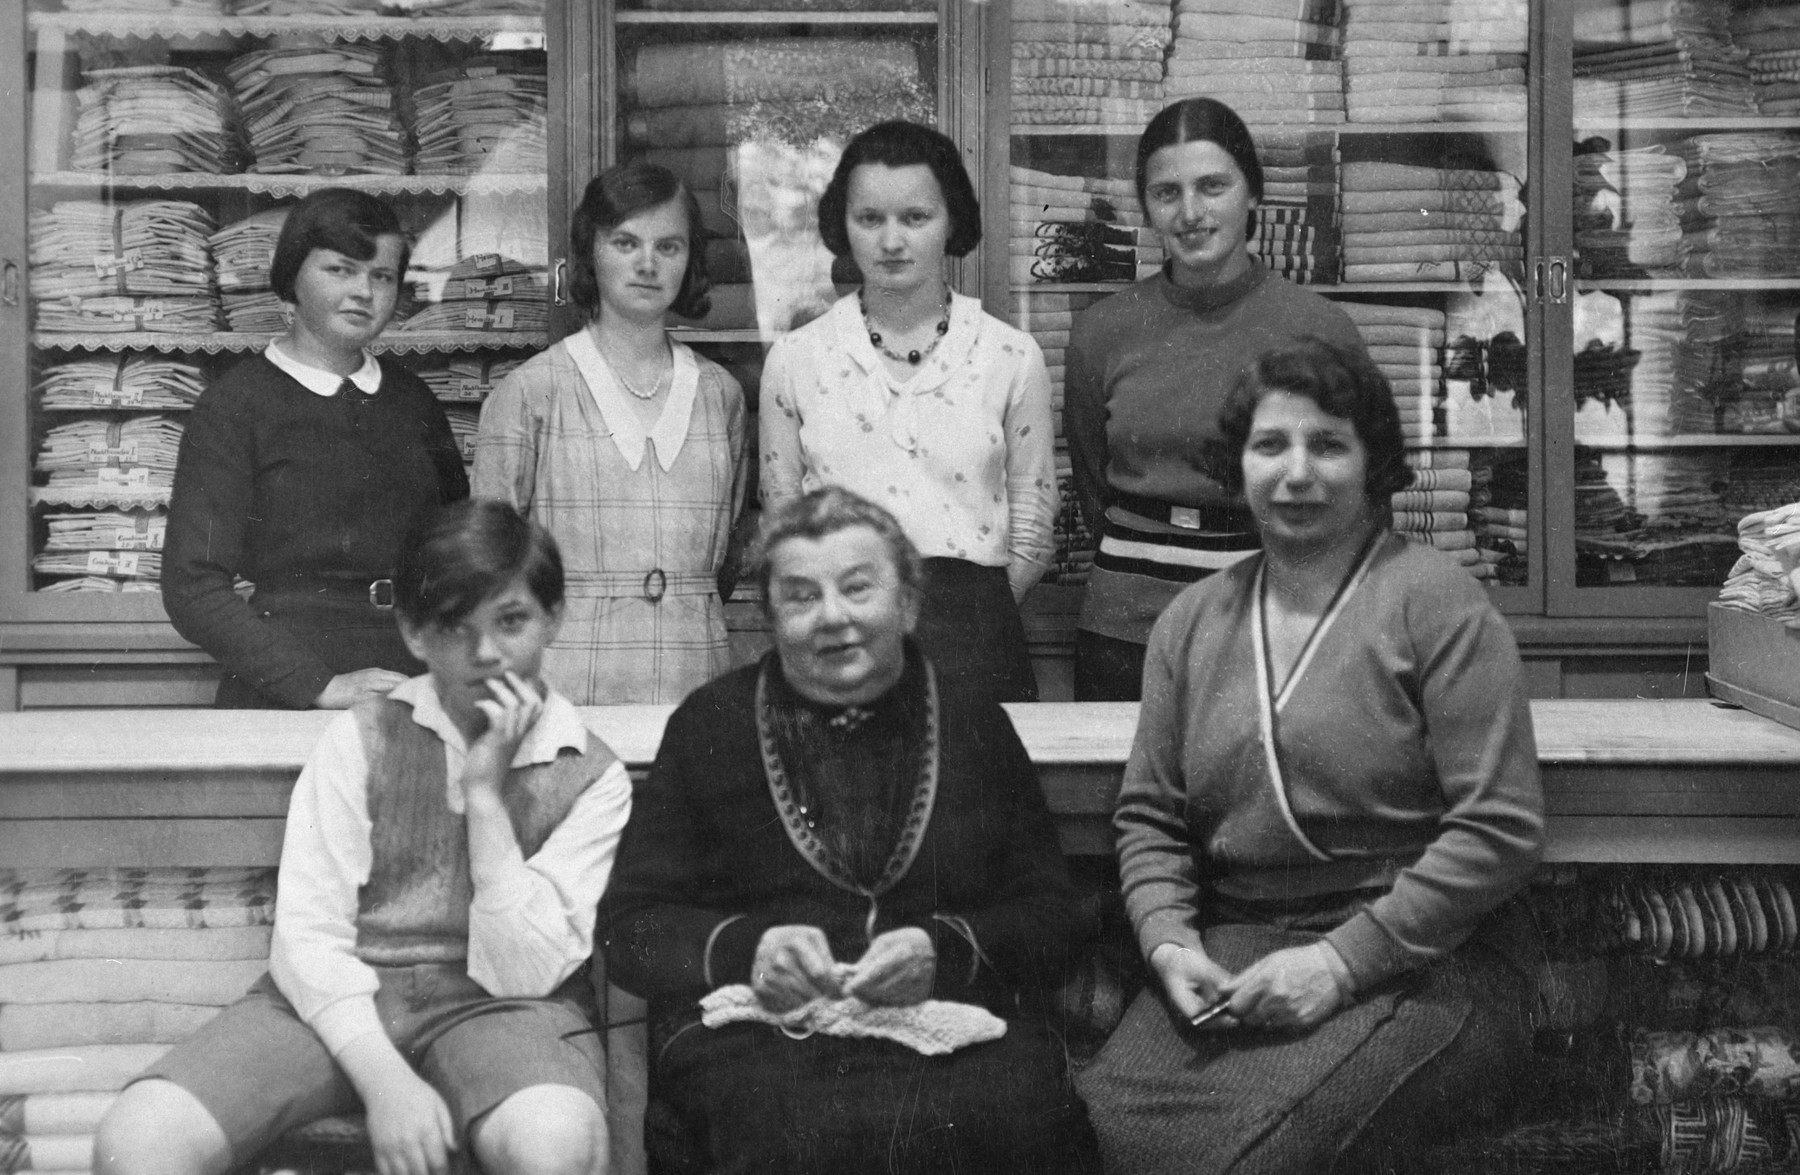 The Jewish owners of a dry goods store in Marienbad pose in front of the counter with other employees standing behind them.  Pictured in the center is Emma Kohn (grandmother of the donor) and on the right is Berta Schleissner (mother of the donor).